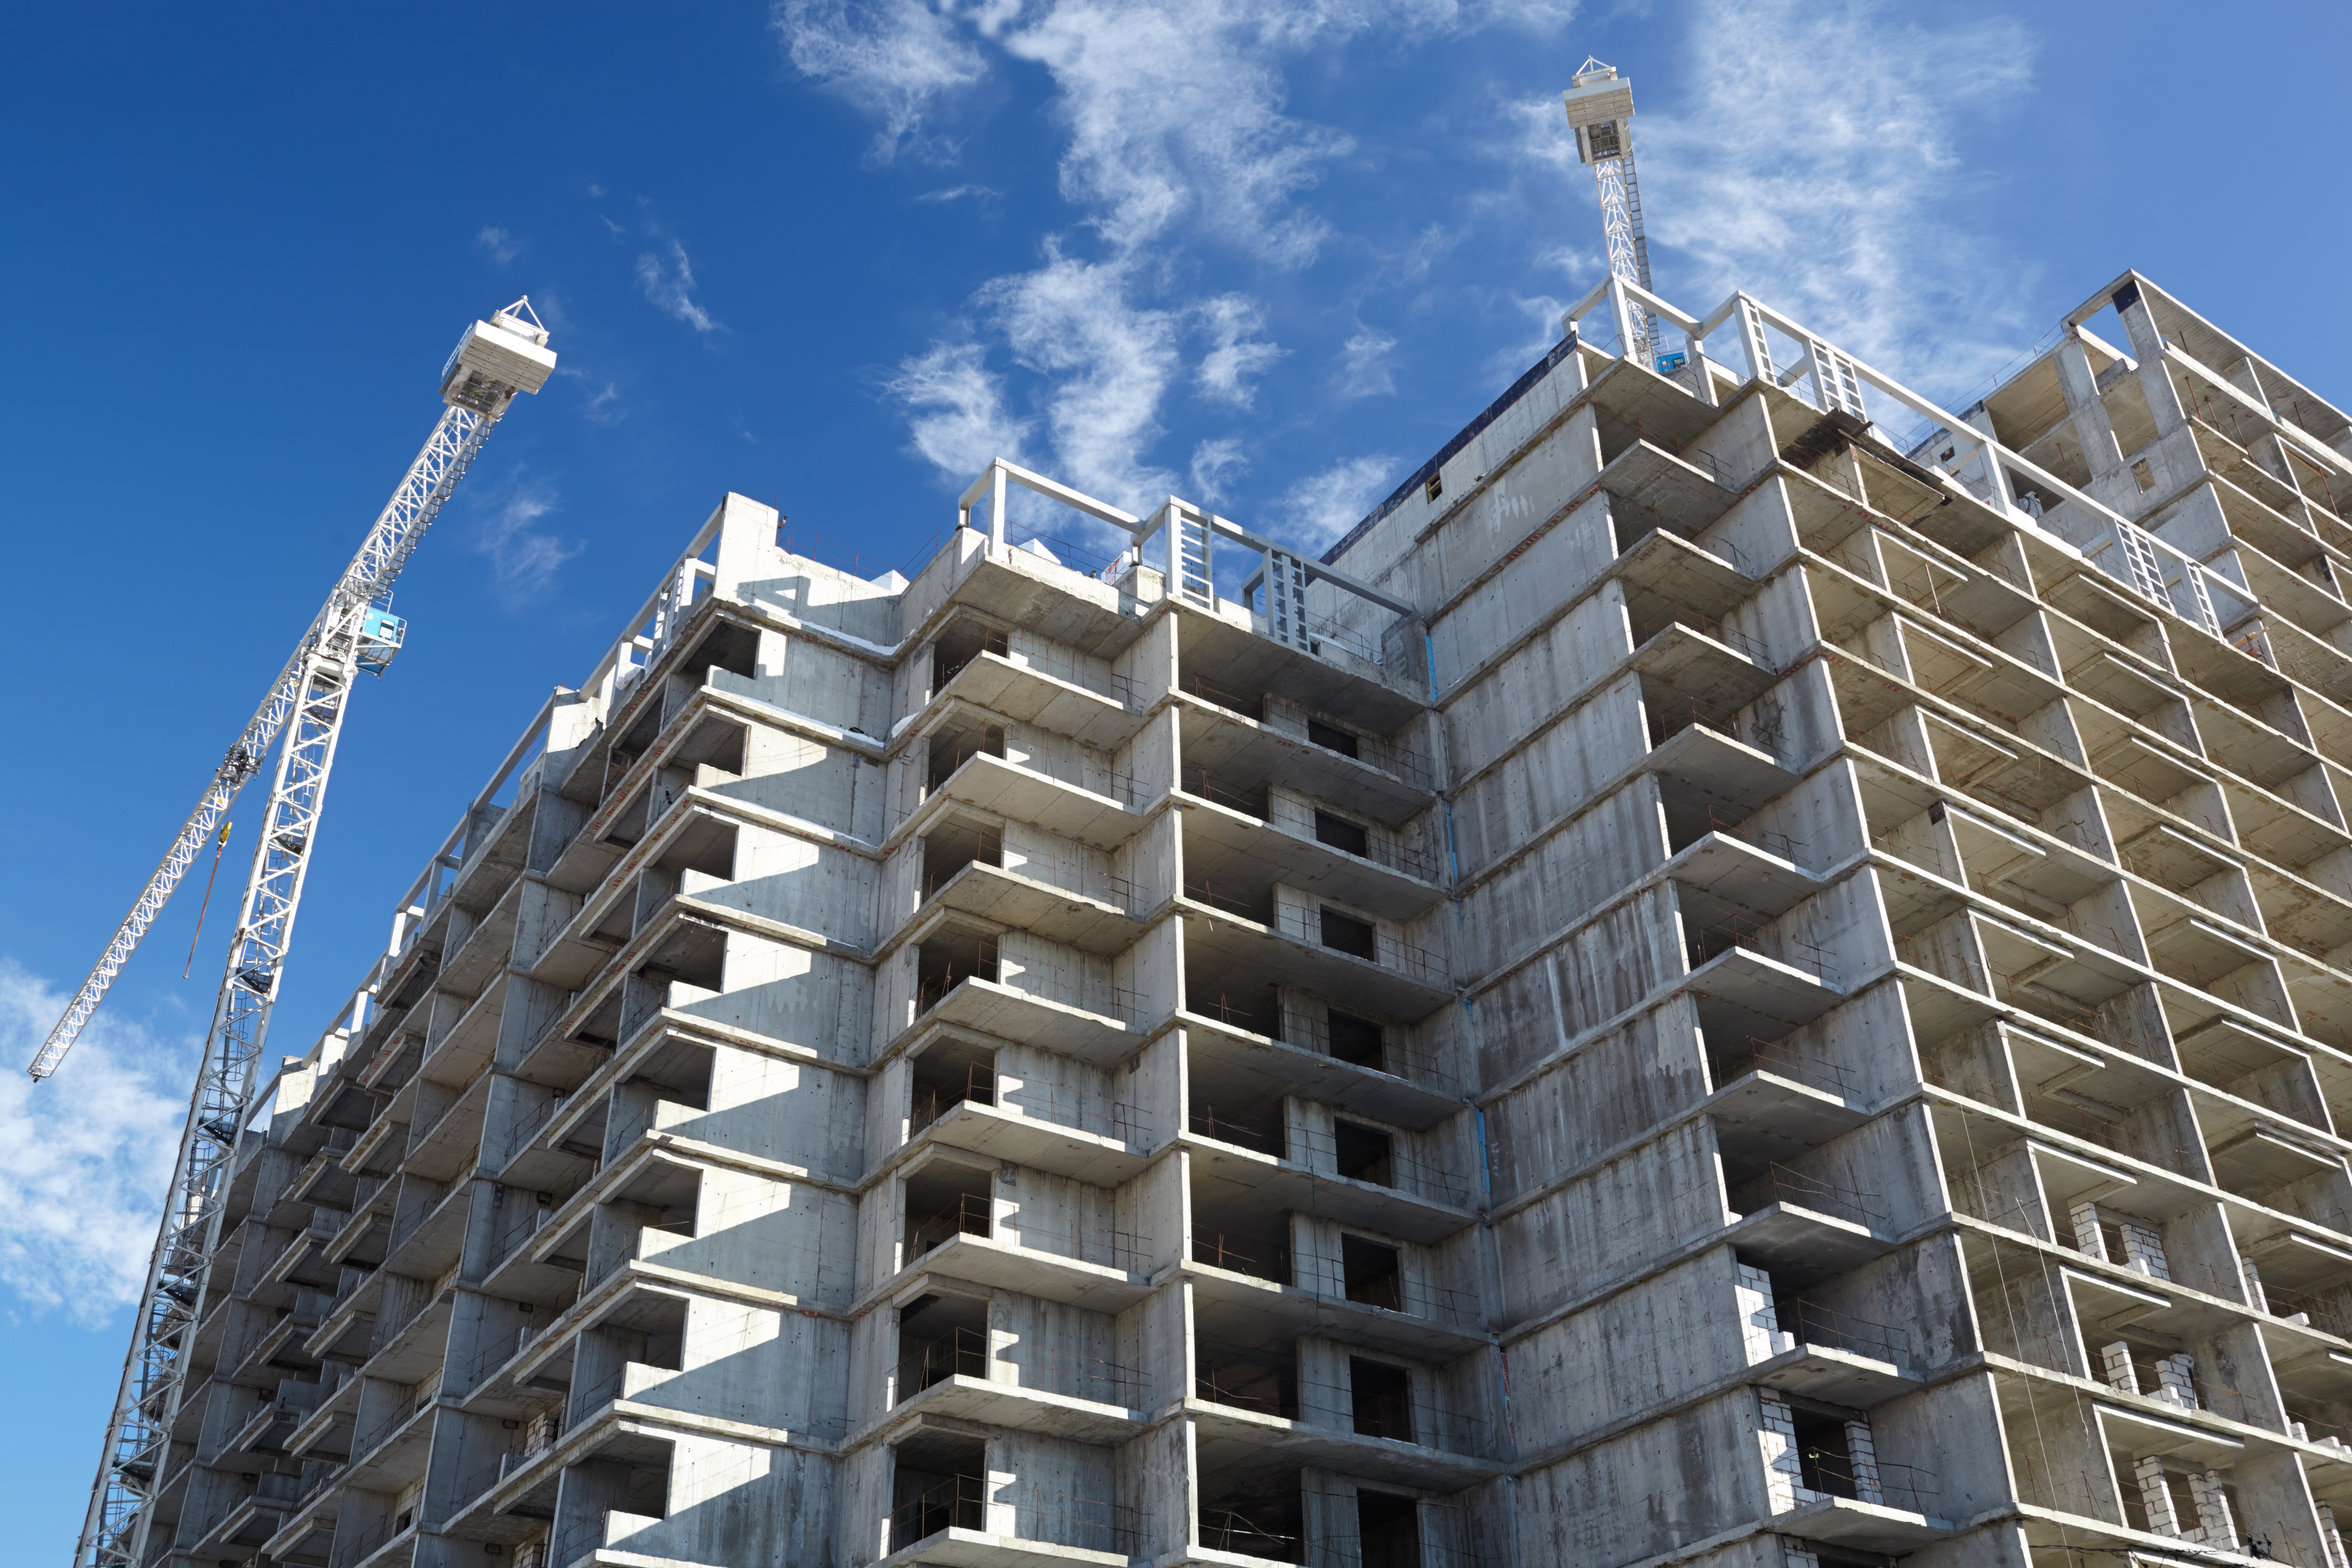 construction-of-building-H8EYM6F